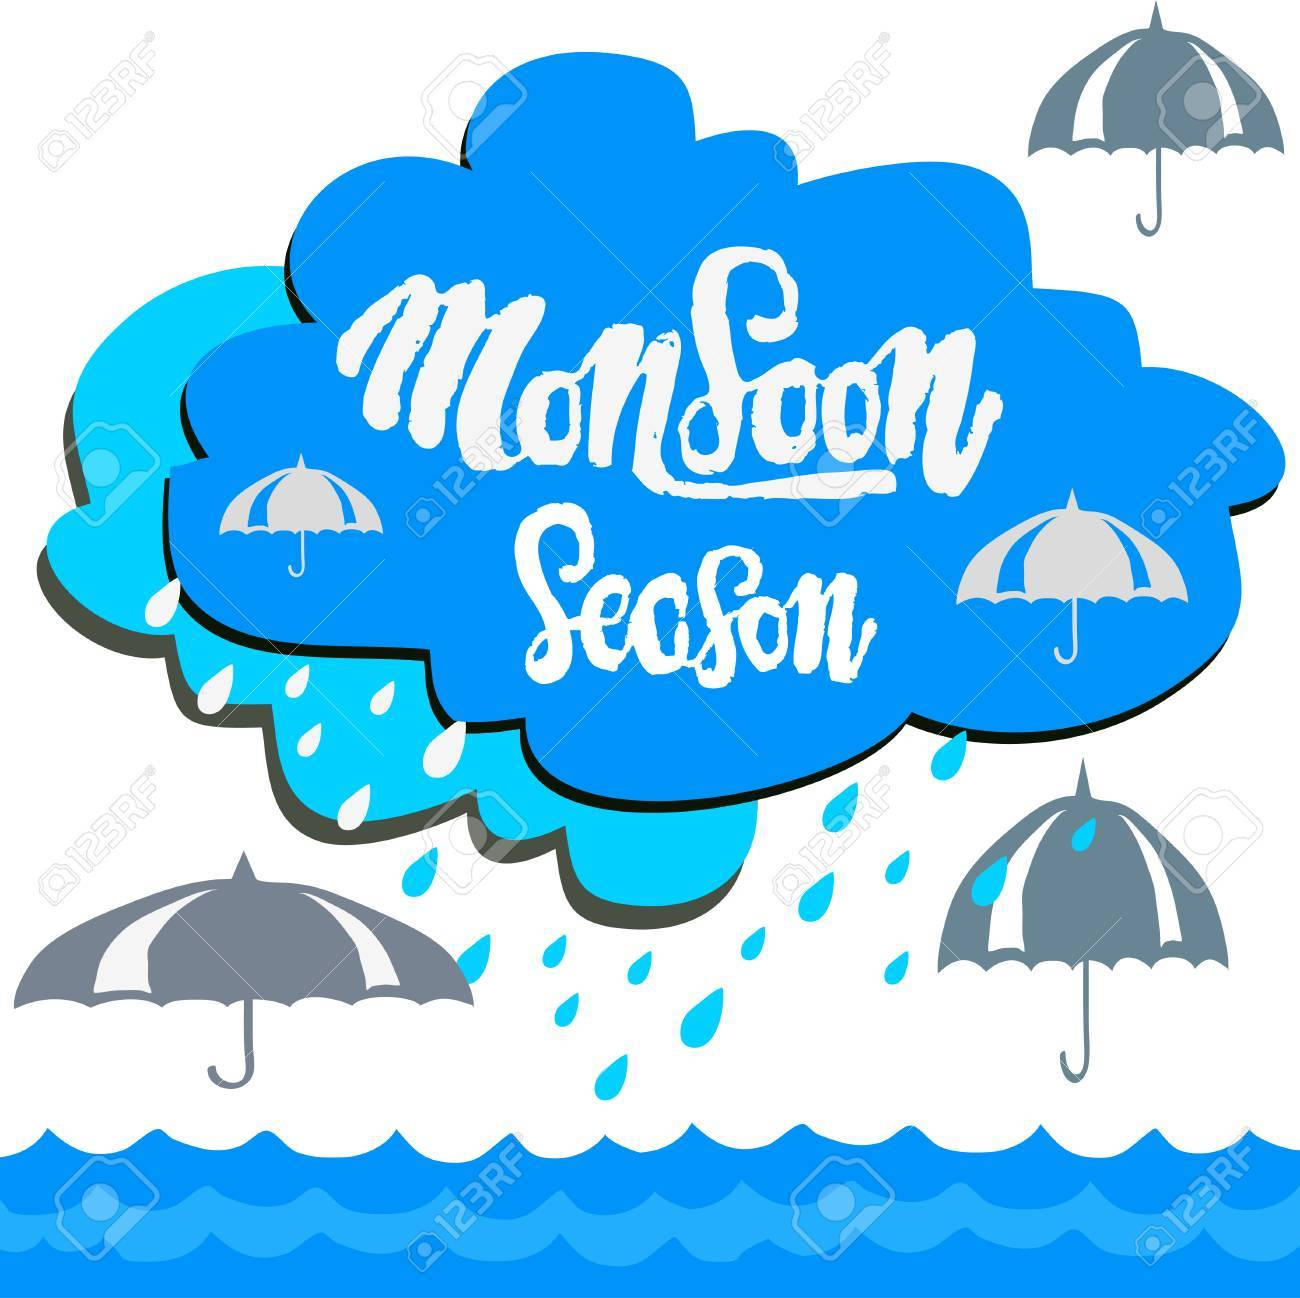 Monsoon clipart picture freeuse stock Monsoon season clipart 9 » Clipart Portal picture freeuse stock